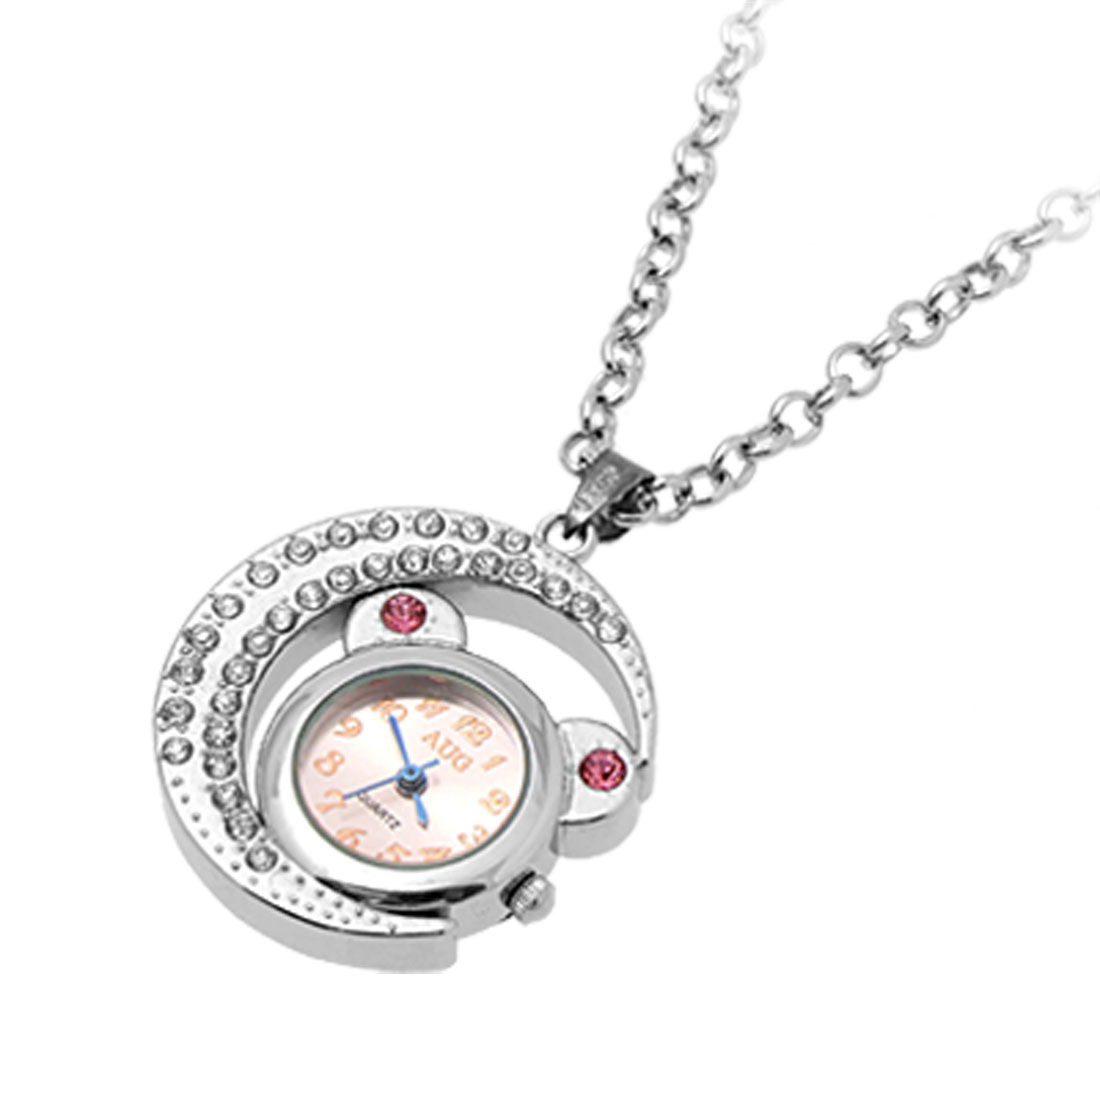 Jewelry Necklace Fairy Cat Moon Pendant Quartz Watches